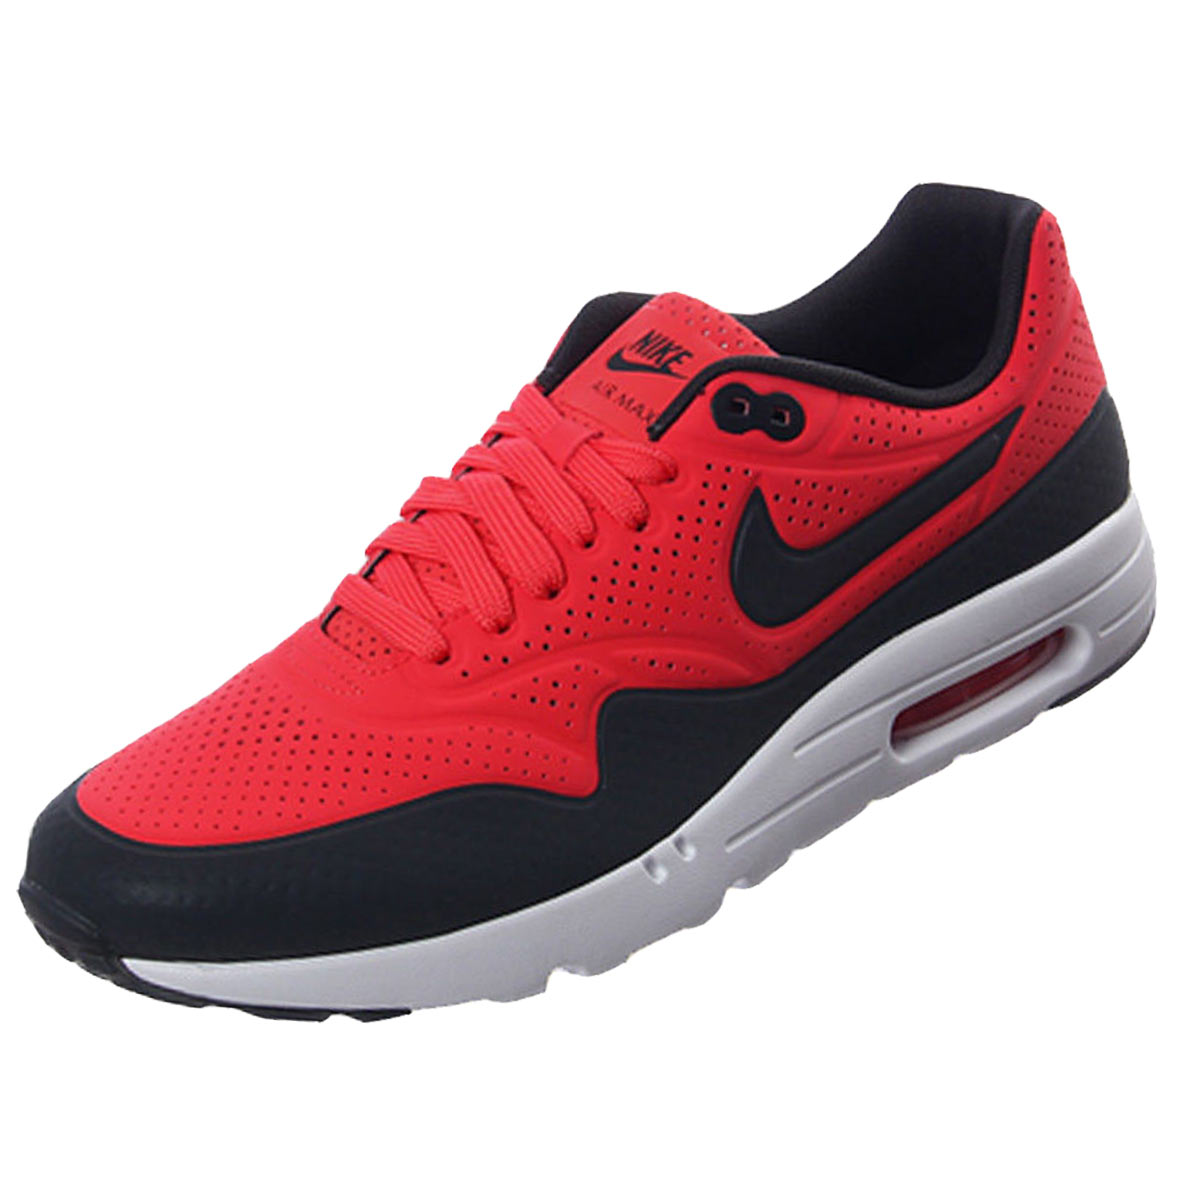 ae04f958b433 Nike Air Max 1 Ultra Moire Rio Red Mens Sneakers Shoes - MyCraze